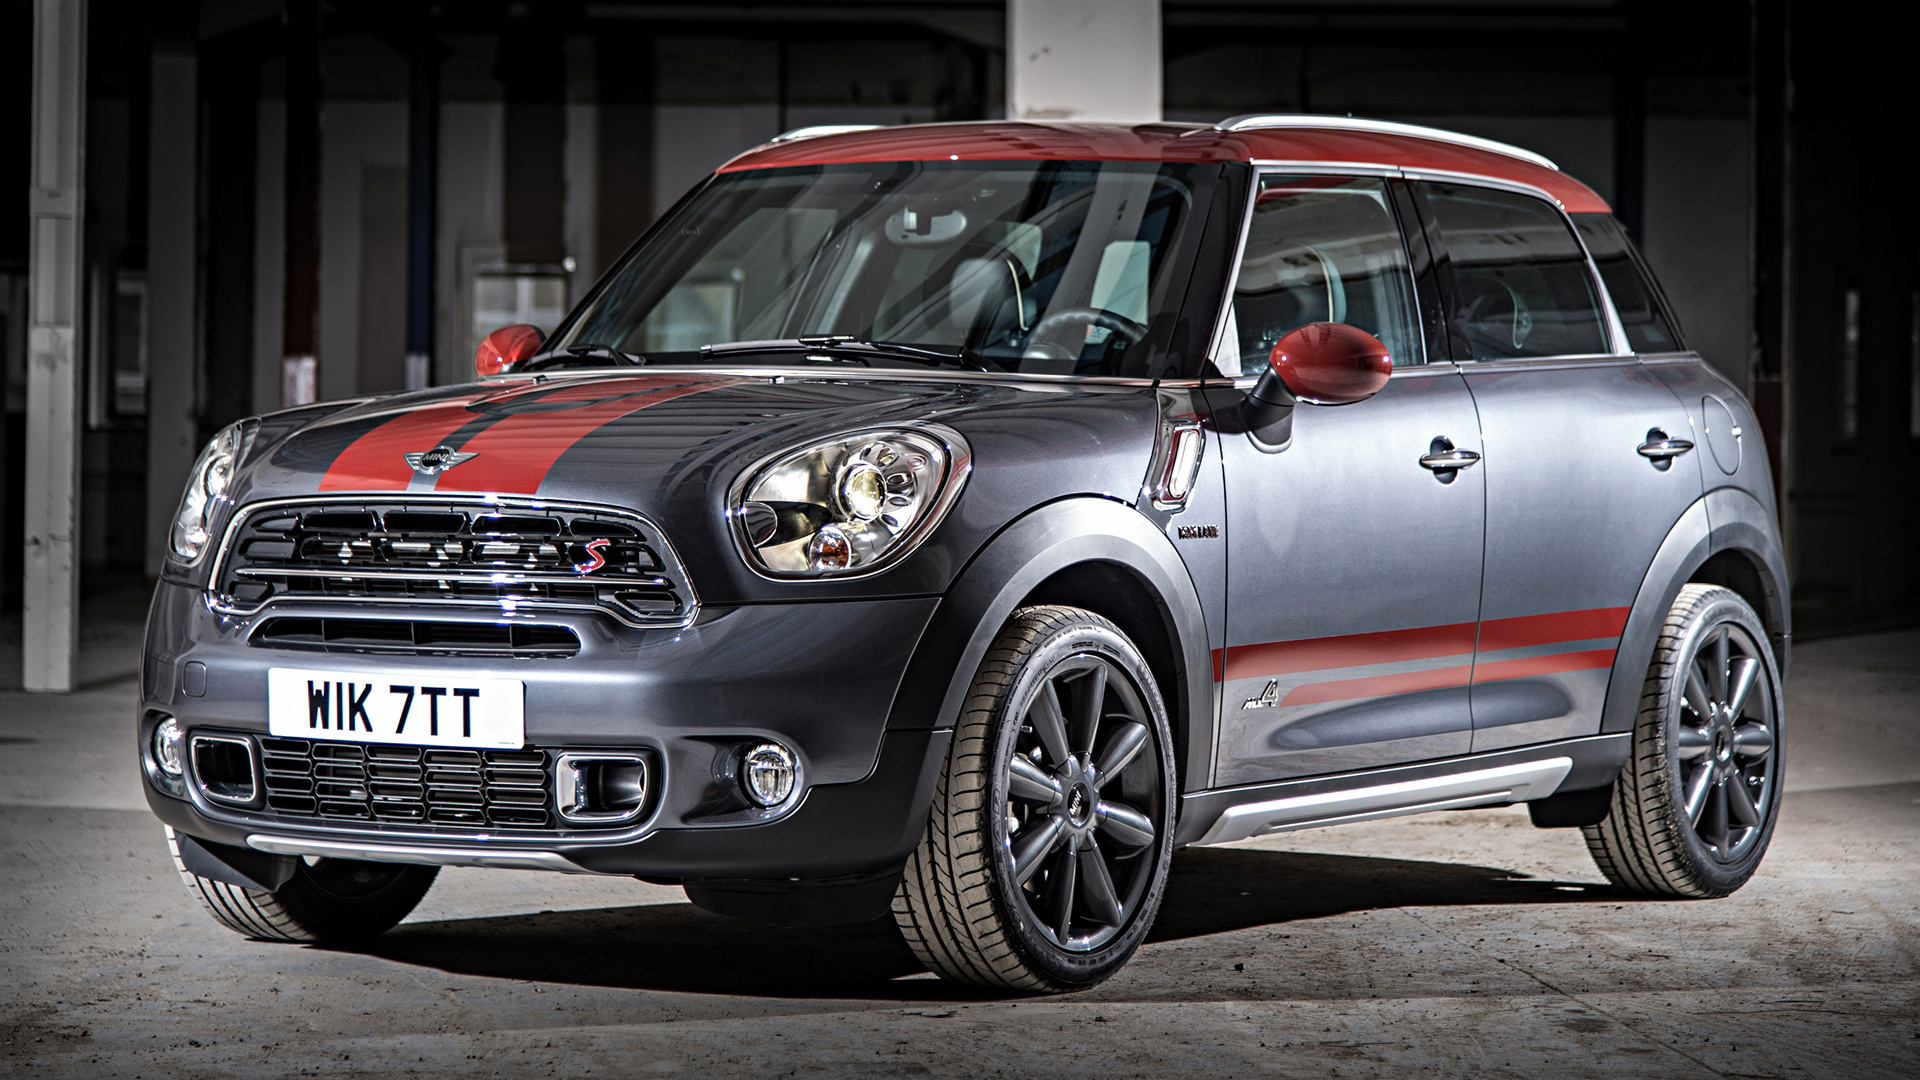 Bmw Mini Cooper >> Mini Cooper S Countryman Park Lane (2015) Wallpapers and HD Images - Car Pixel